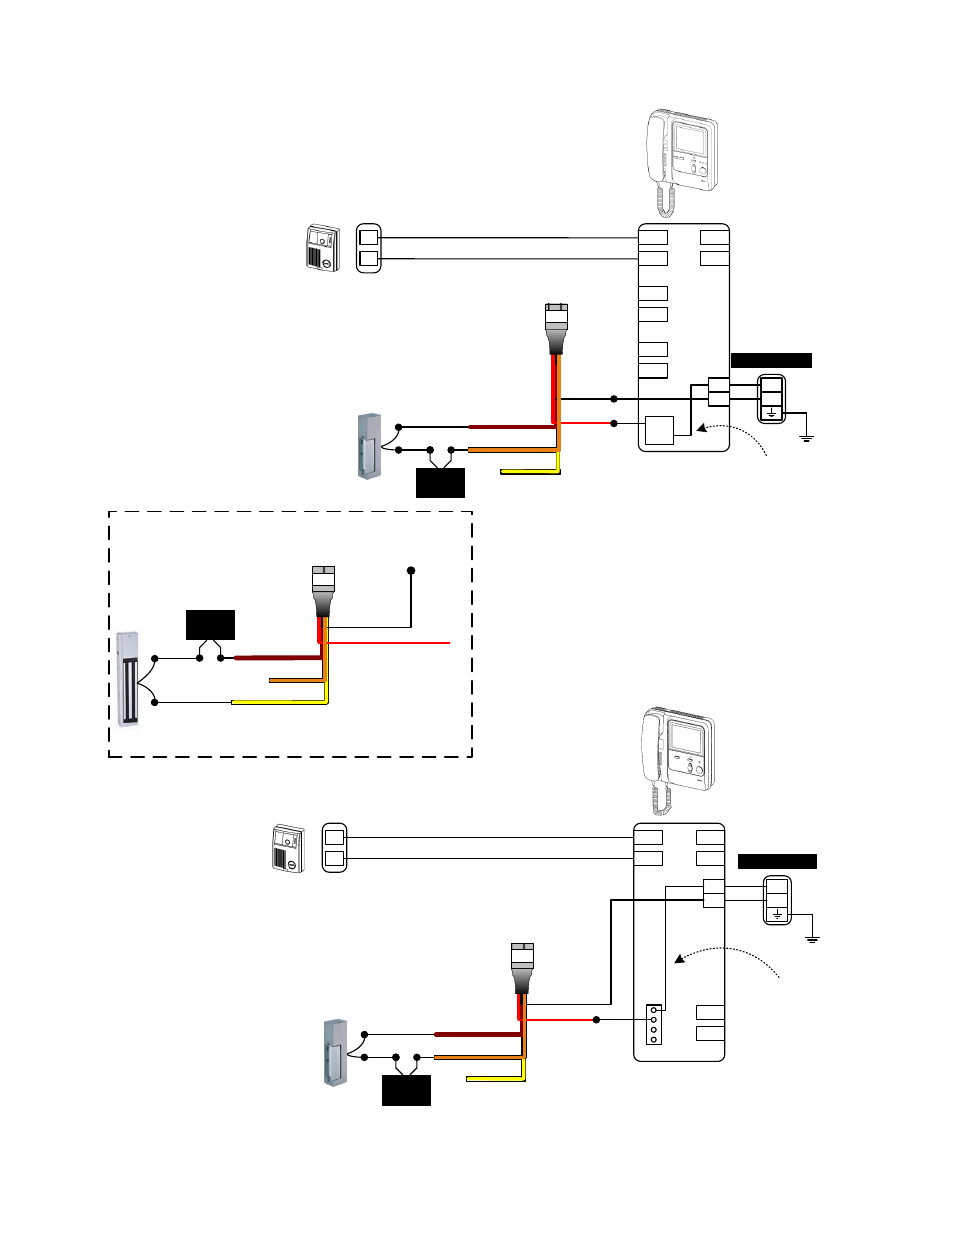 electric strike wiring diagram electric strike wiring diagram photo Electric Round Key Locks electric strike lock wiring diagram wiring library electric strike wiring diagram electric strike wiring diagram photo